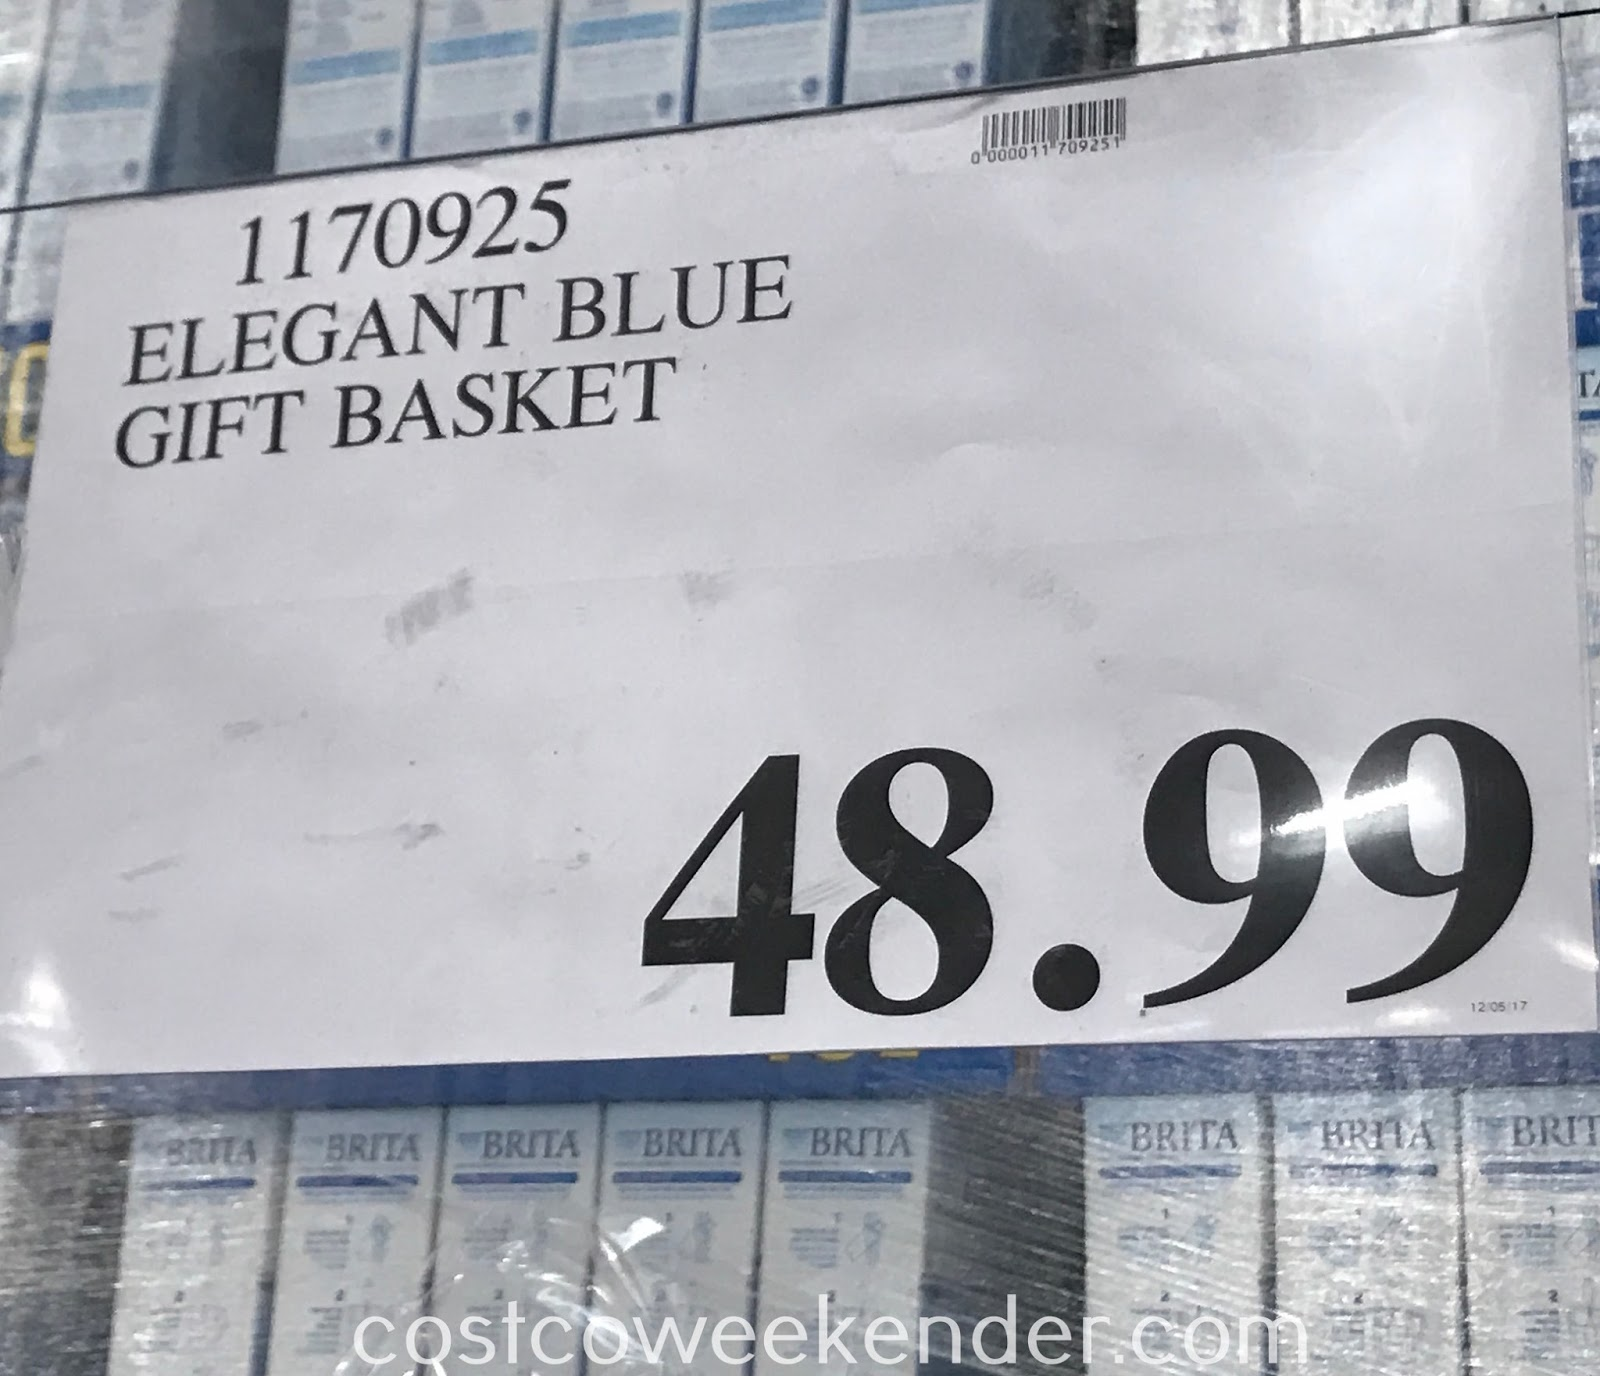 Costco 1170925 - Elegant Blue Gift Basket: great as a gift for the holidays